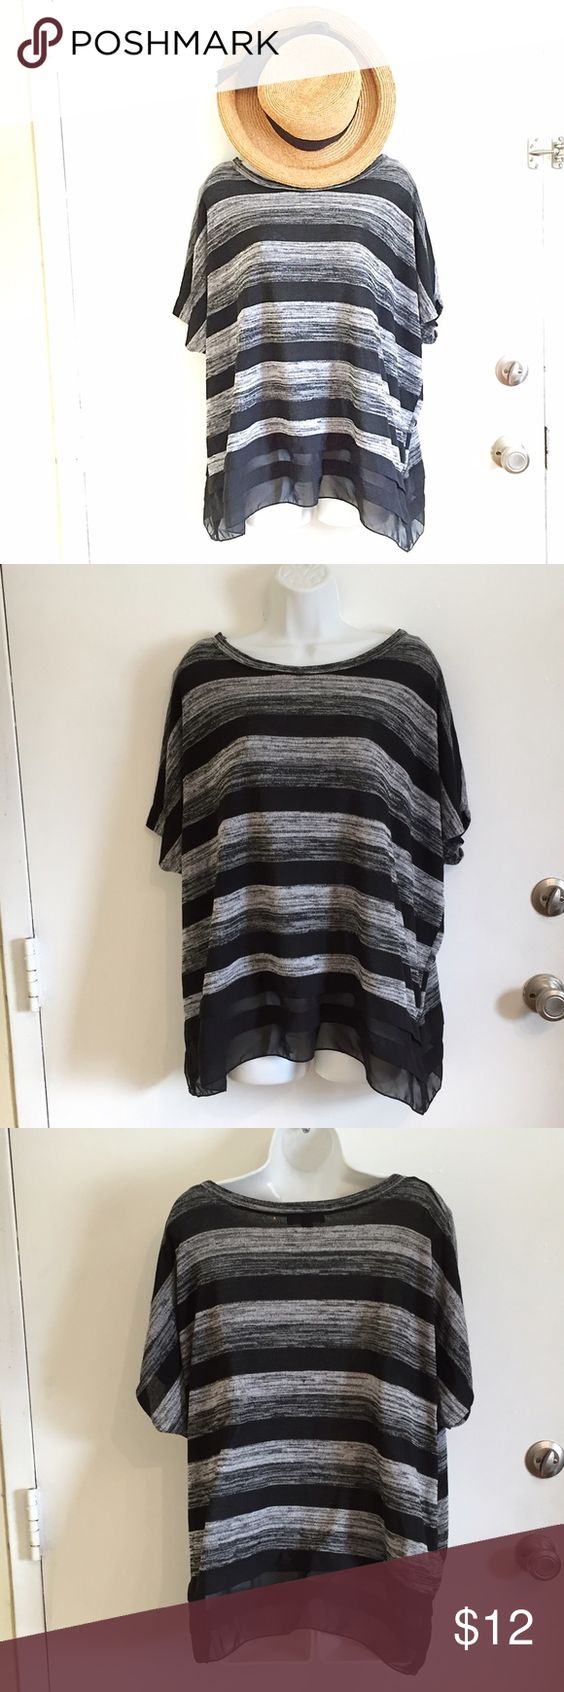 Striped Knit Top Short sleeve knit sweater/top. Grey and black stripes with sheer ruffle along the bottom. Size large. #striped #knit #top #shortsleeve #sweater #large #punkydoodle  No modeling Smoke and pet free home I do discount bundles Tops